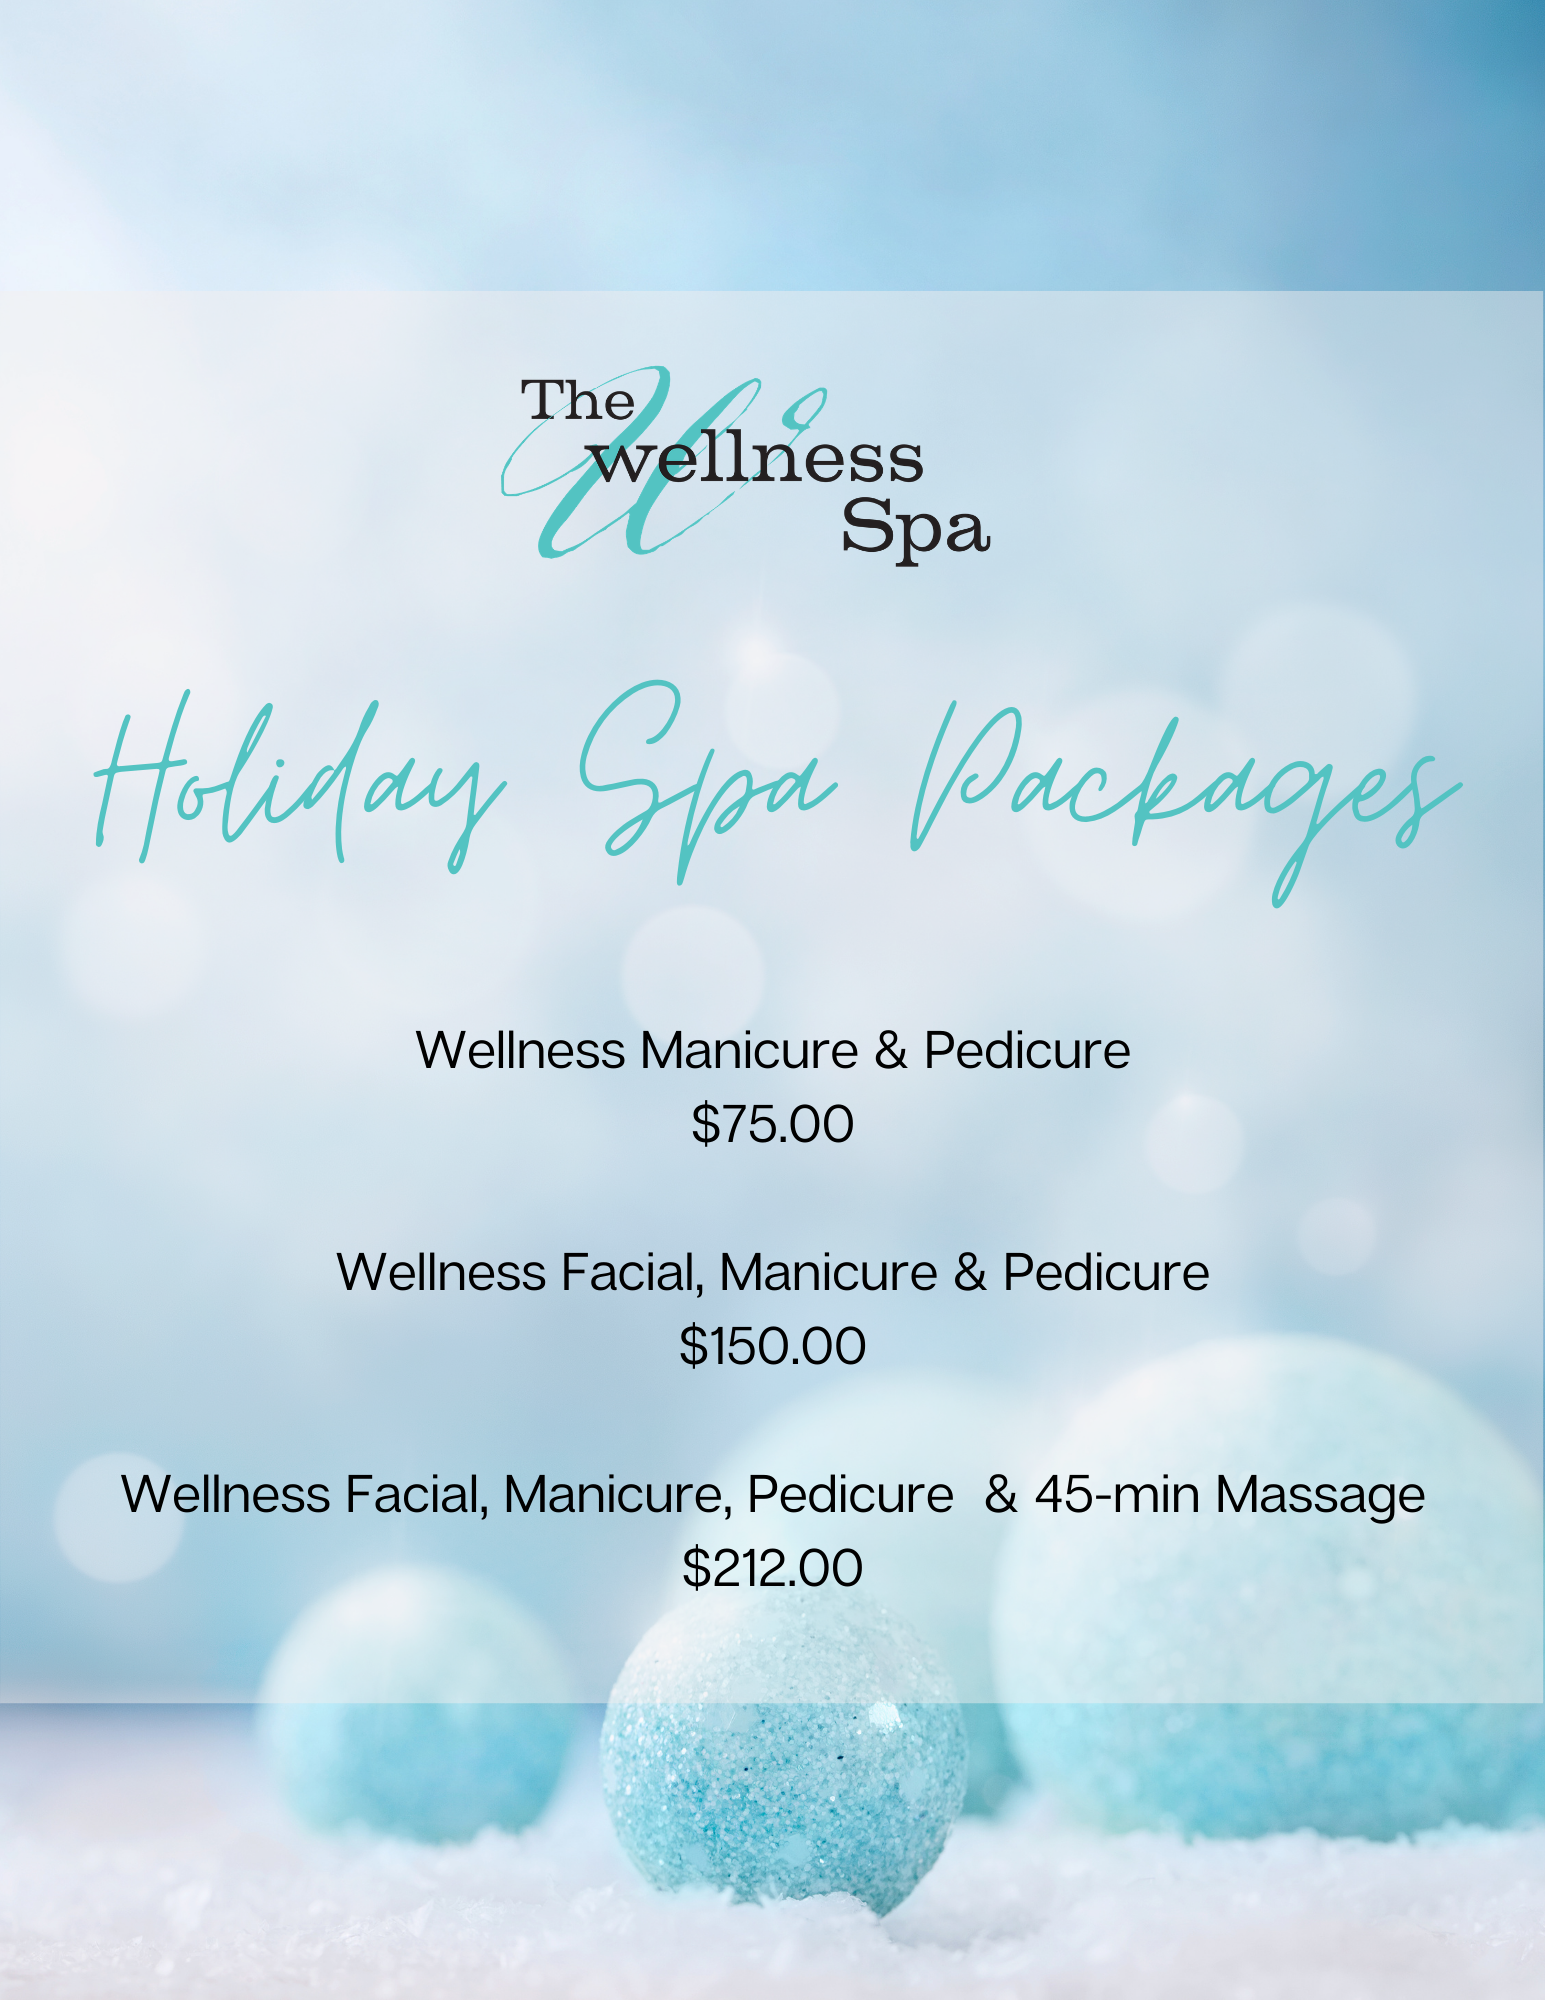 The Wellness Spa Christmas Spa Packages